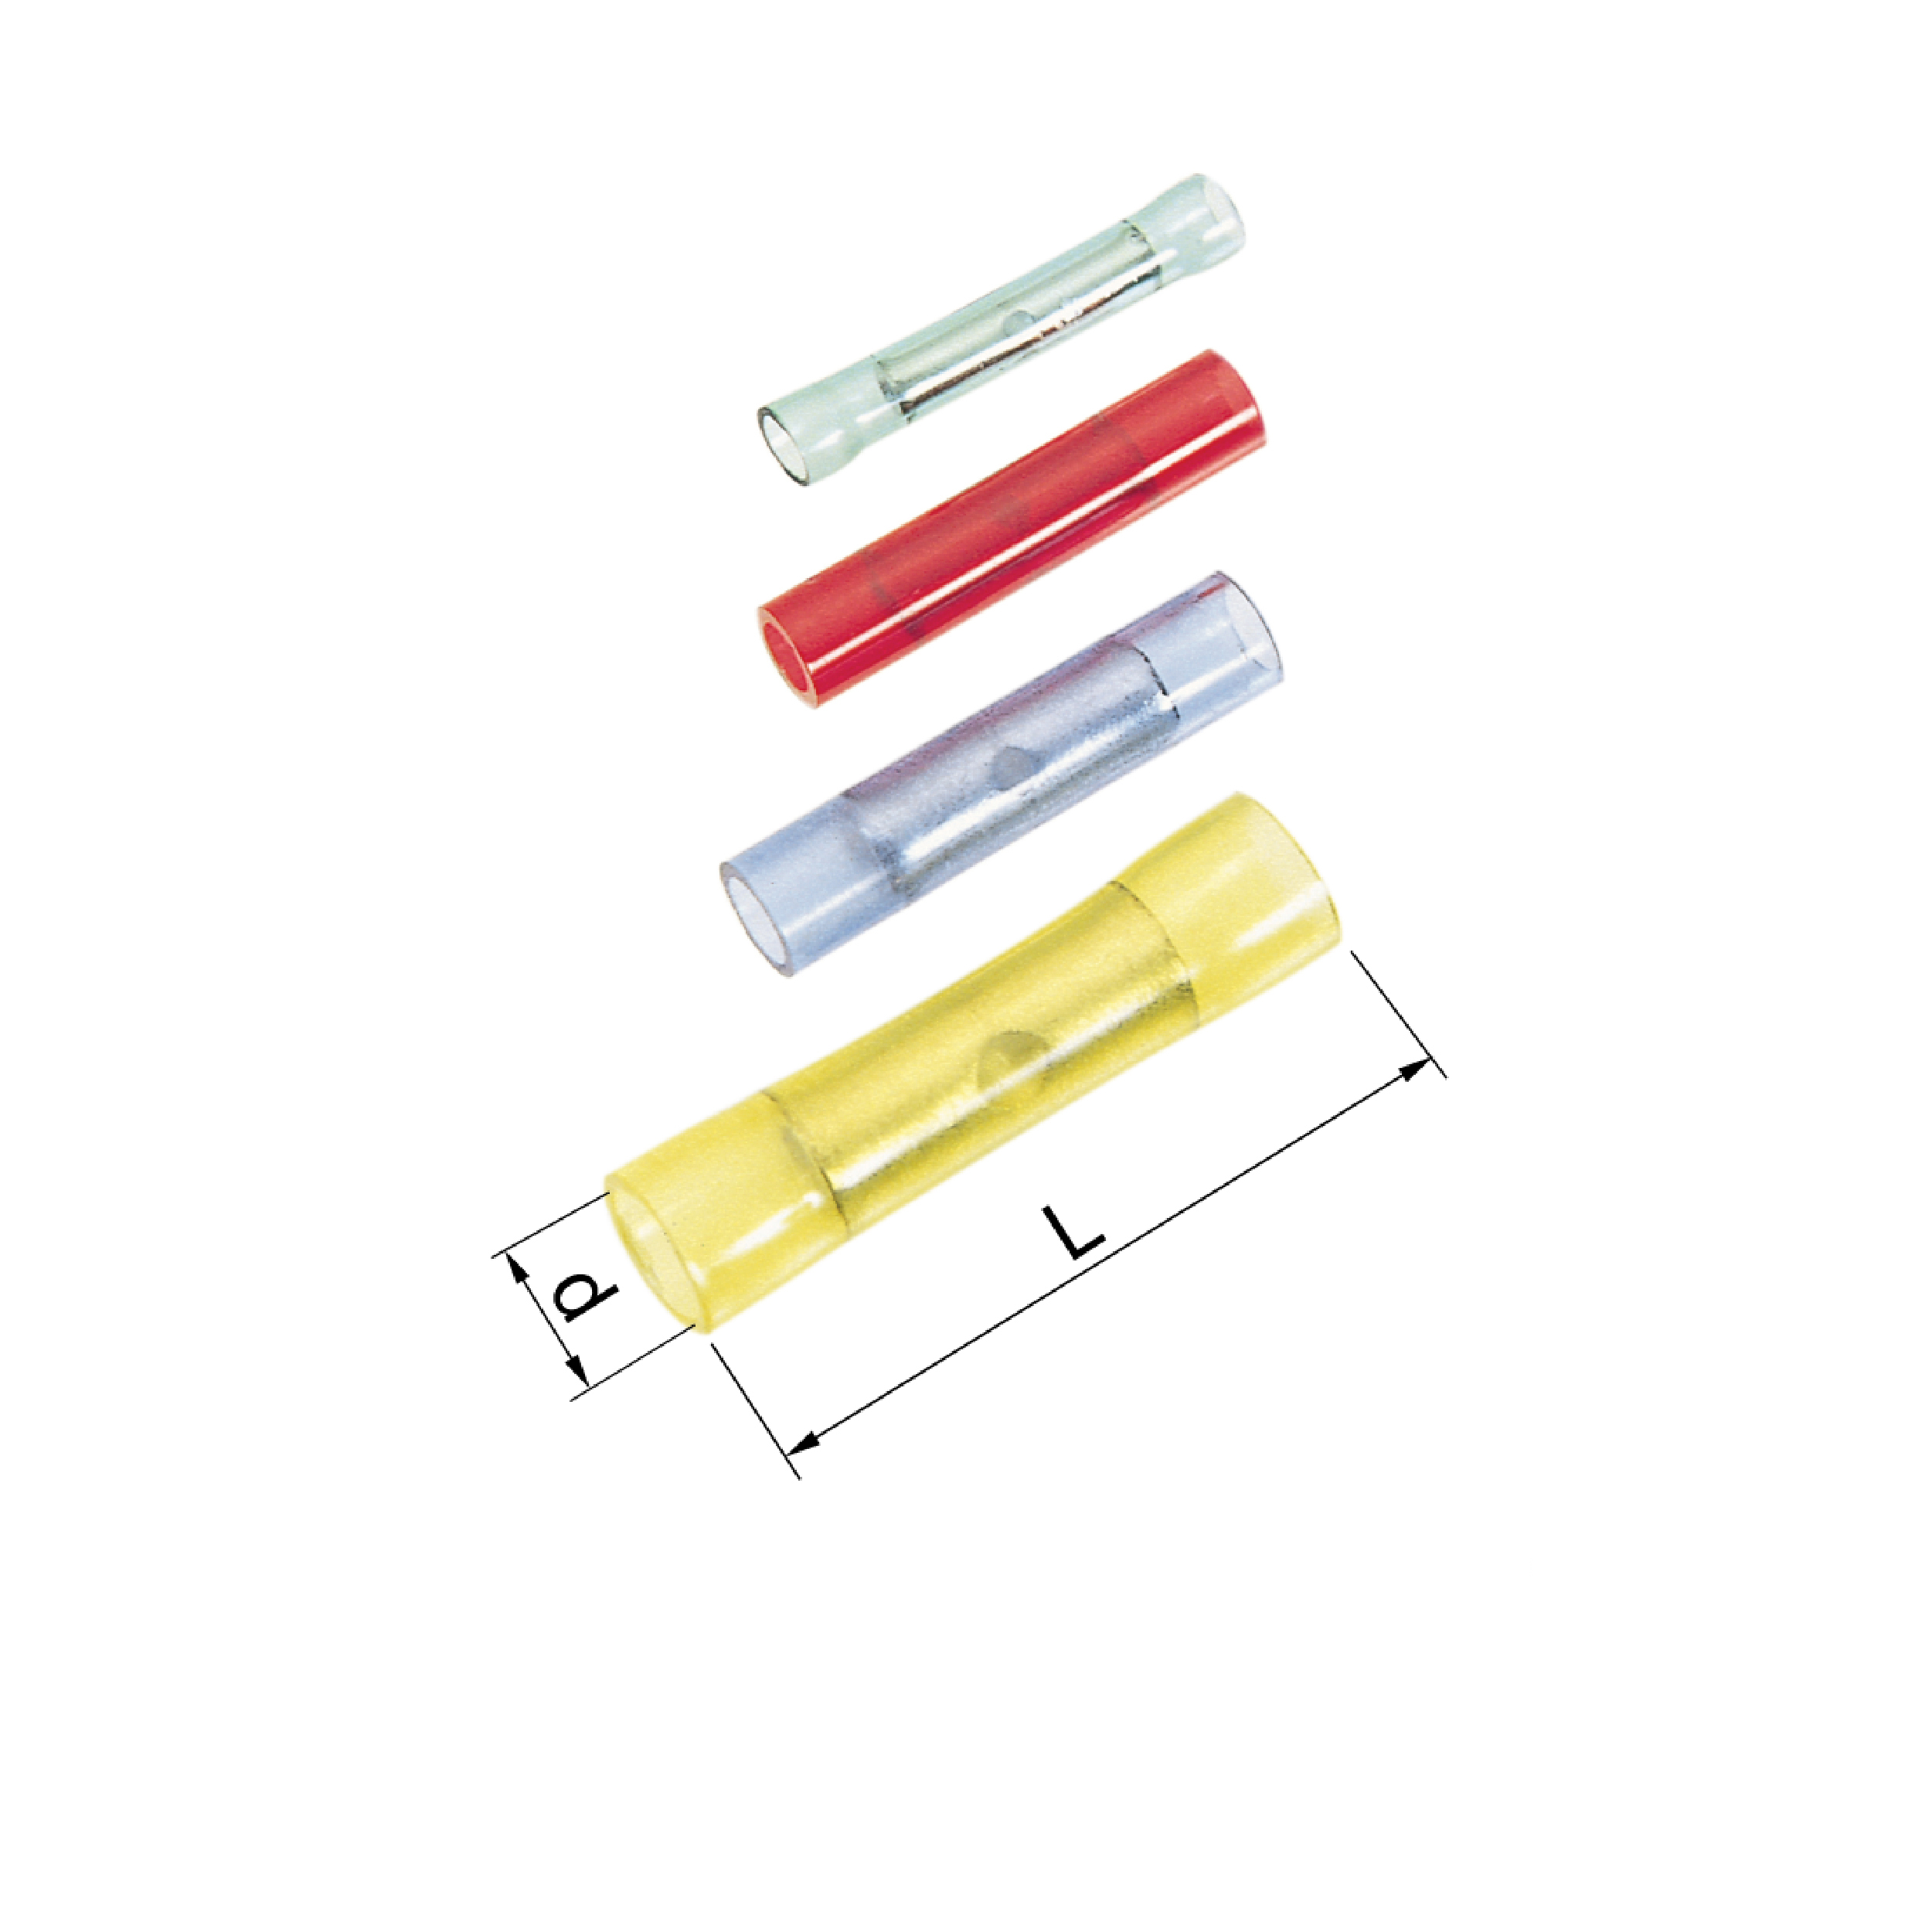 Elpress Pre-Insulated Through Connectors - Halogen Free (0.25-6mm²) A0824SK, A1525SK, A2527Sk, A4652SK